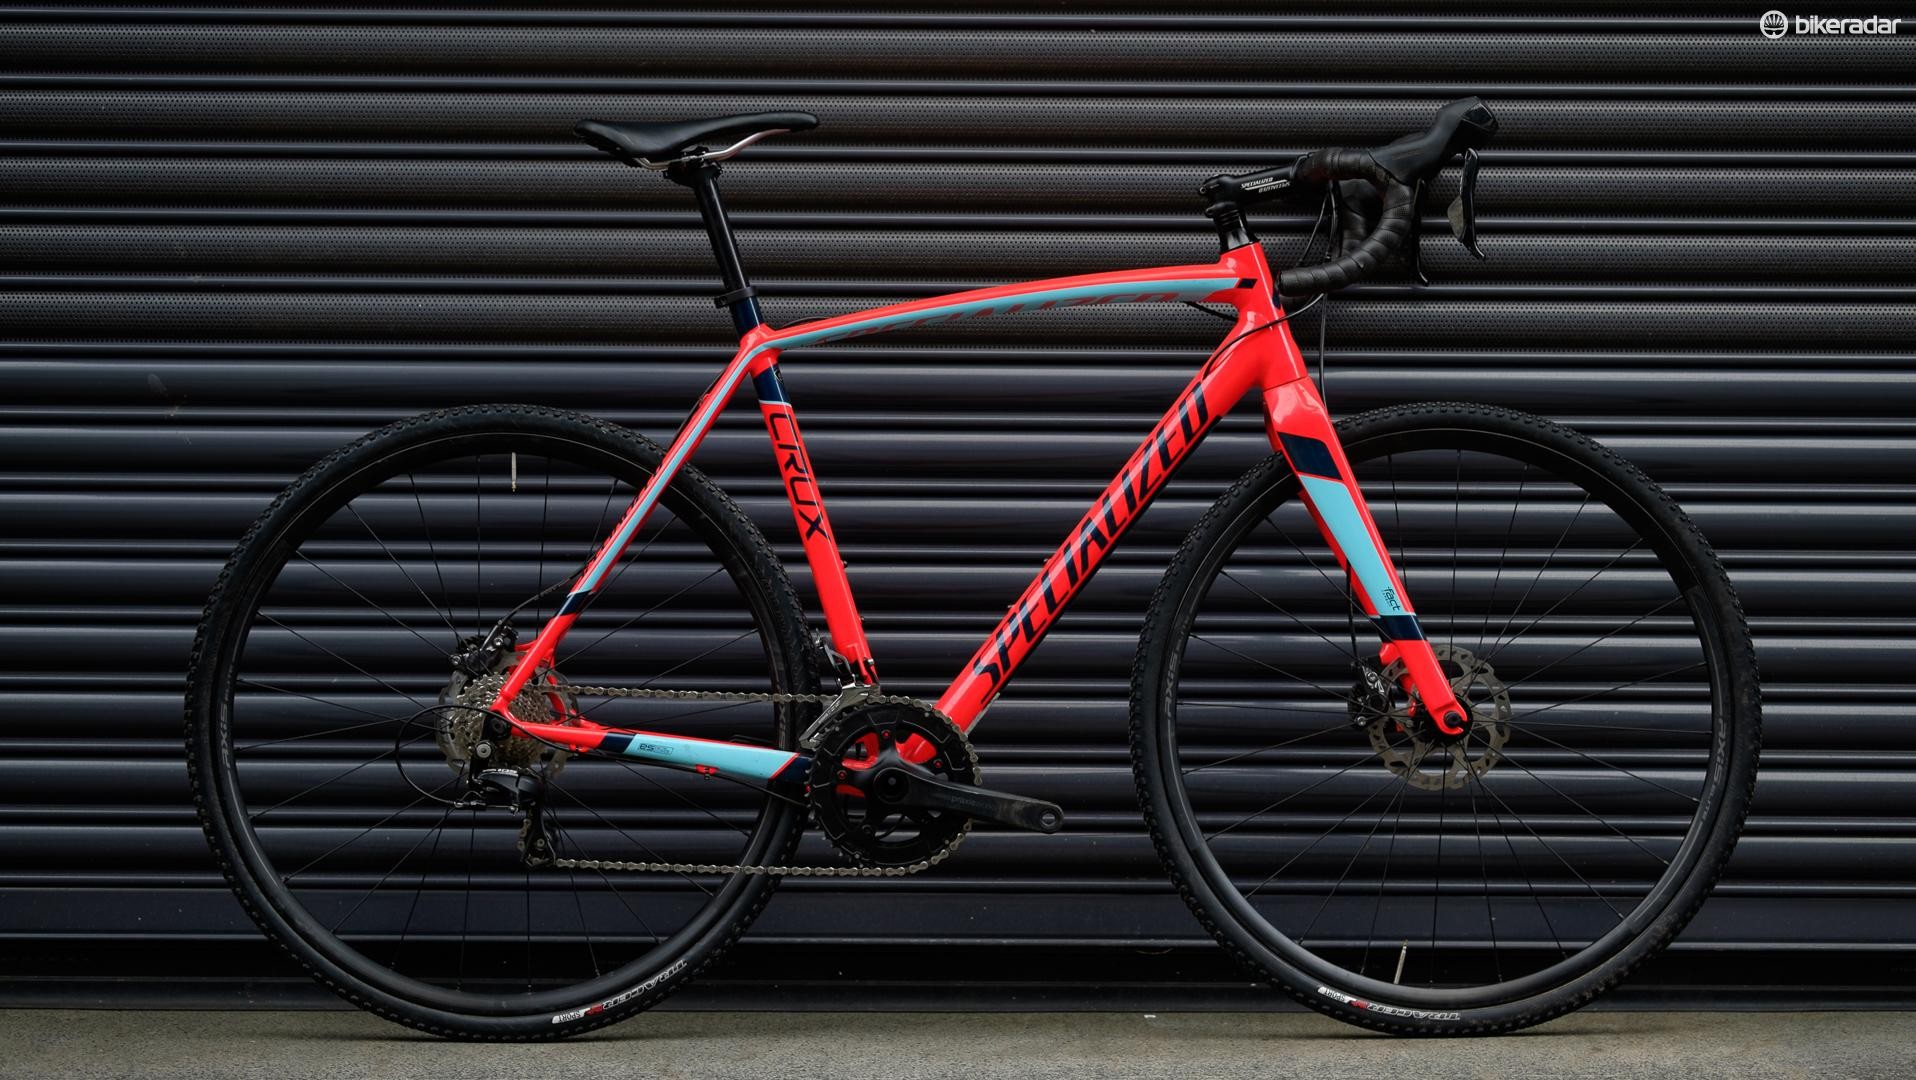 My weapon of choice was the Specialized CruX Sport E5